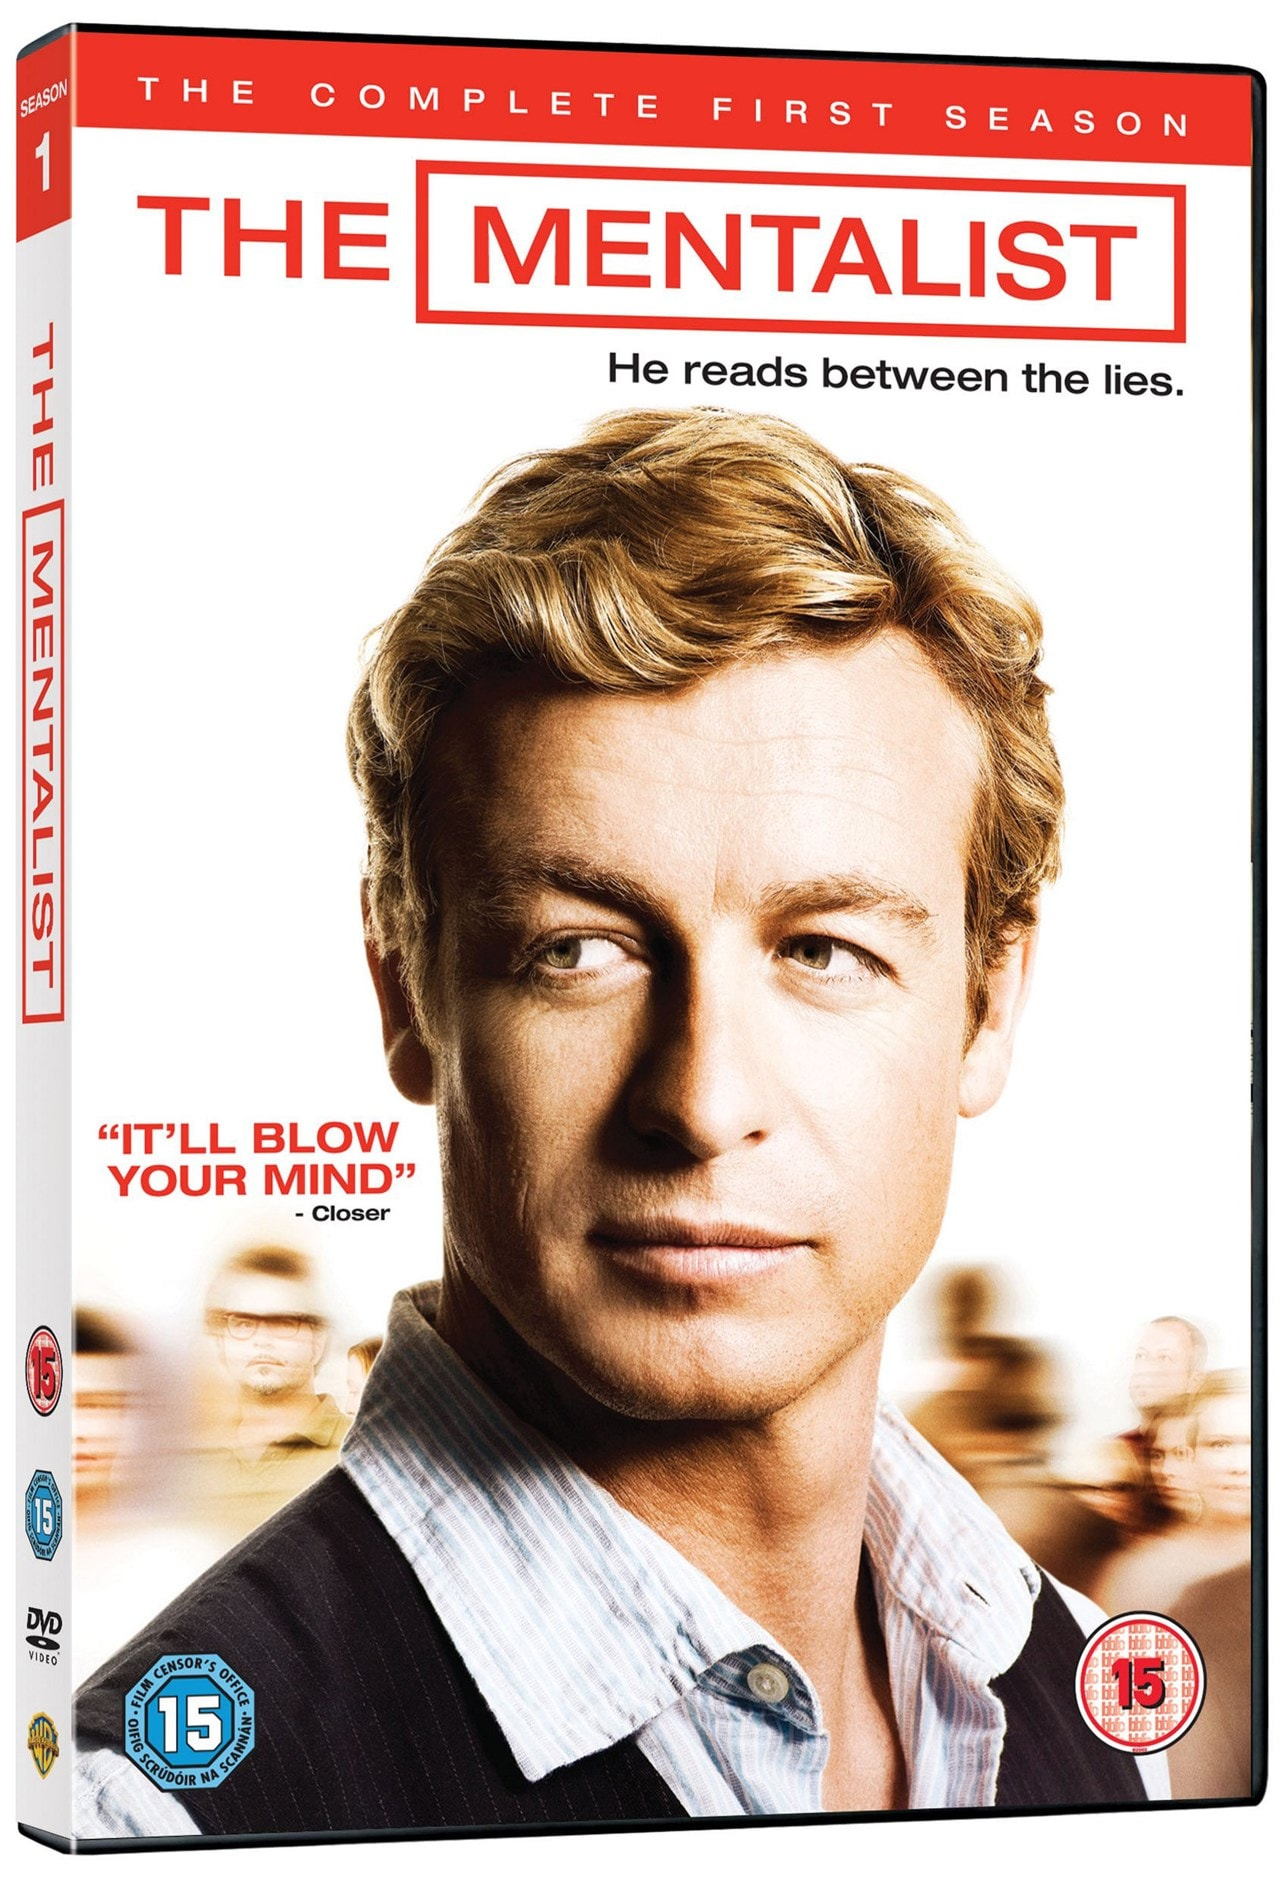 The Mentalist: The Complete First Season - 2